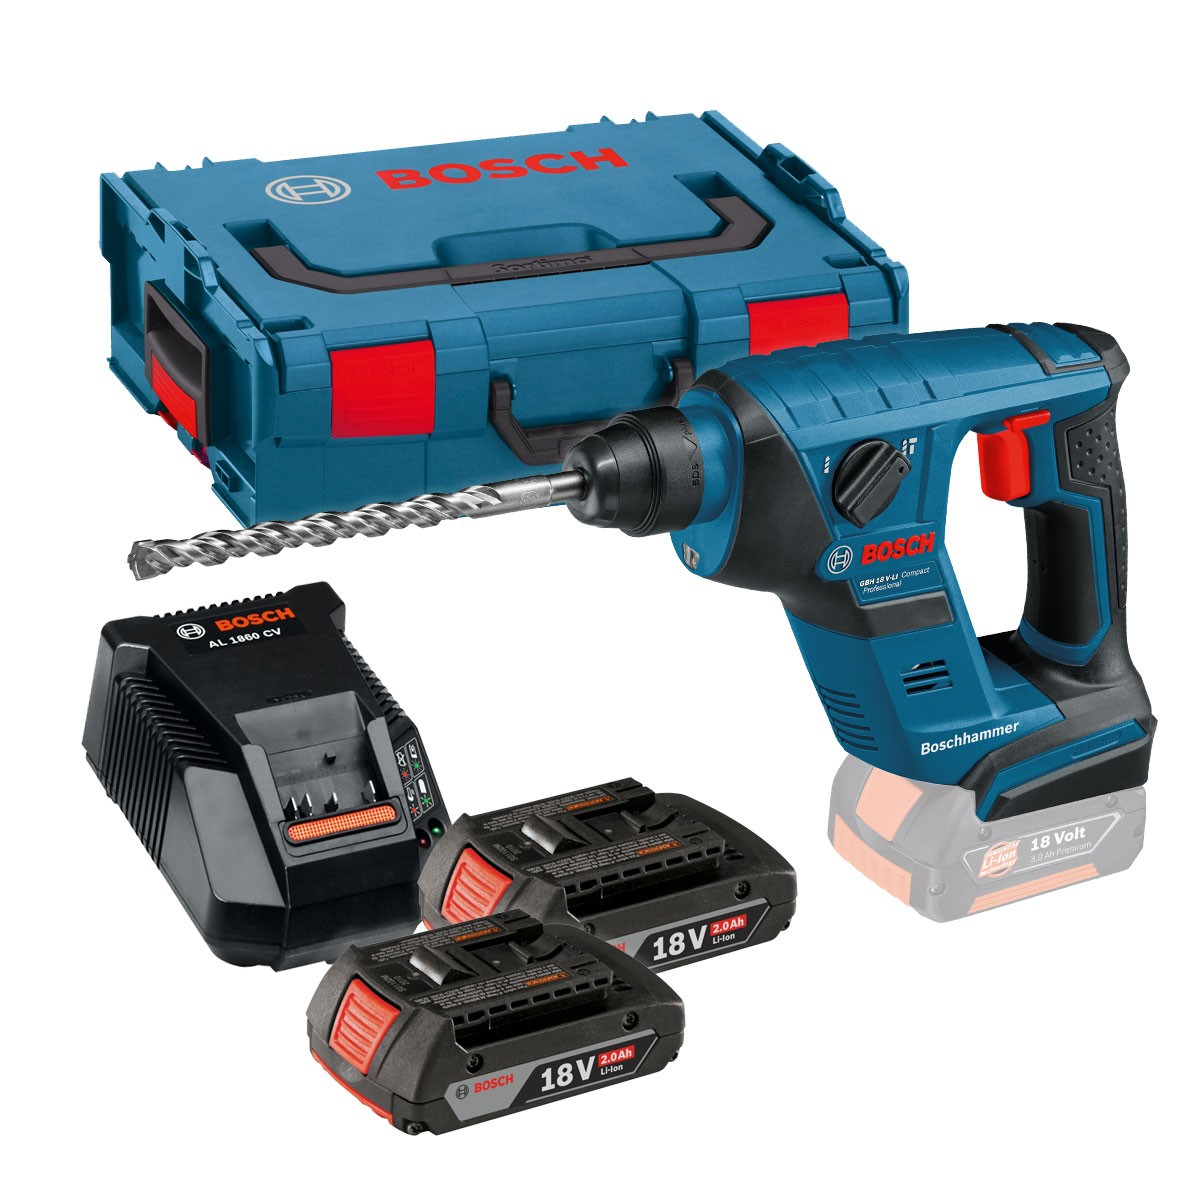 bosch gbh 18 v li cp compact sds plus rotary hammer inc 2x 2 0ah batteries al 1860 cv charger. Black Bedroom Furniture Sets. Home Design Ideas